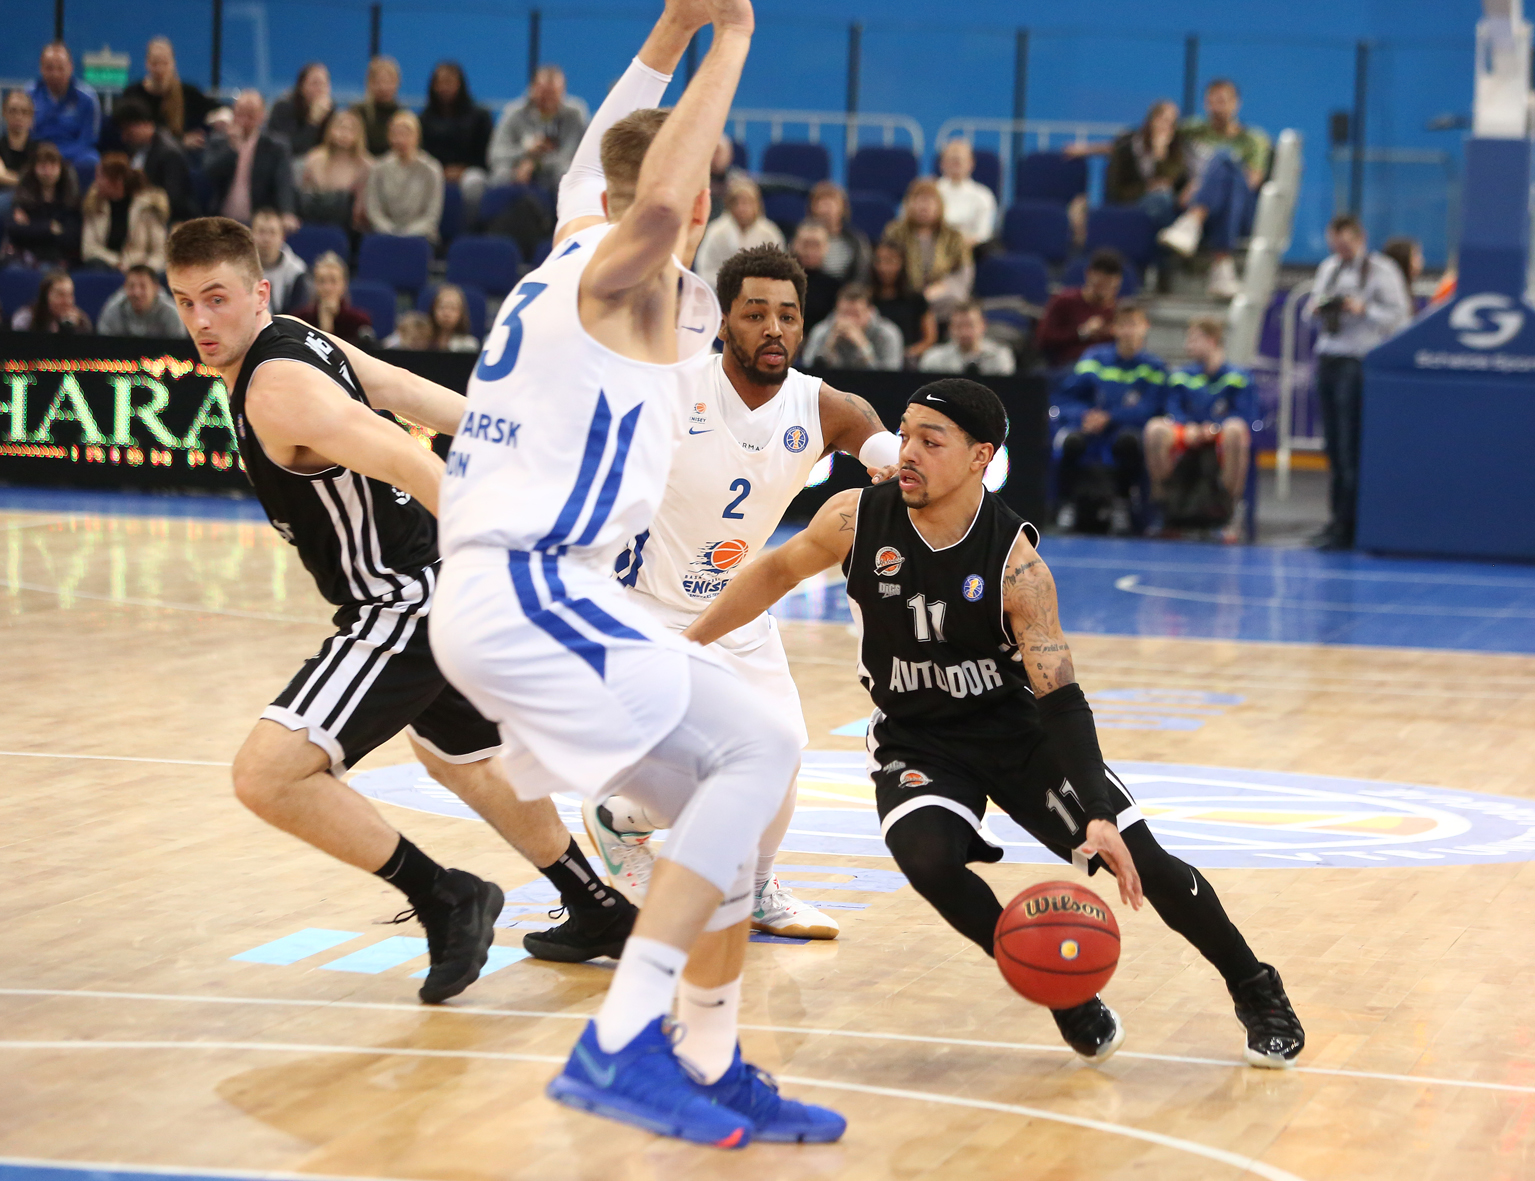 Robinson Dazzles, Avtodor Goes 5th By Dropping Enisey